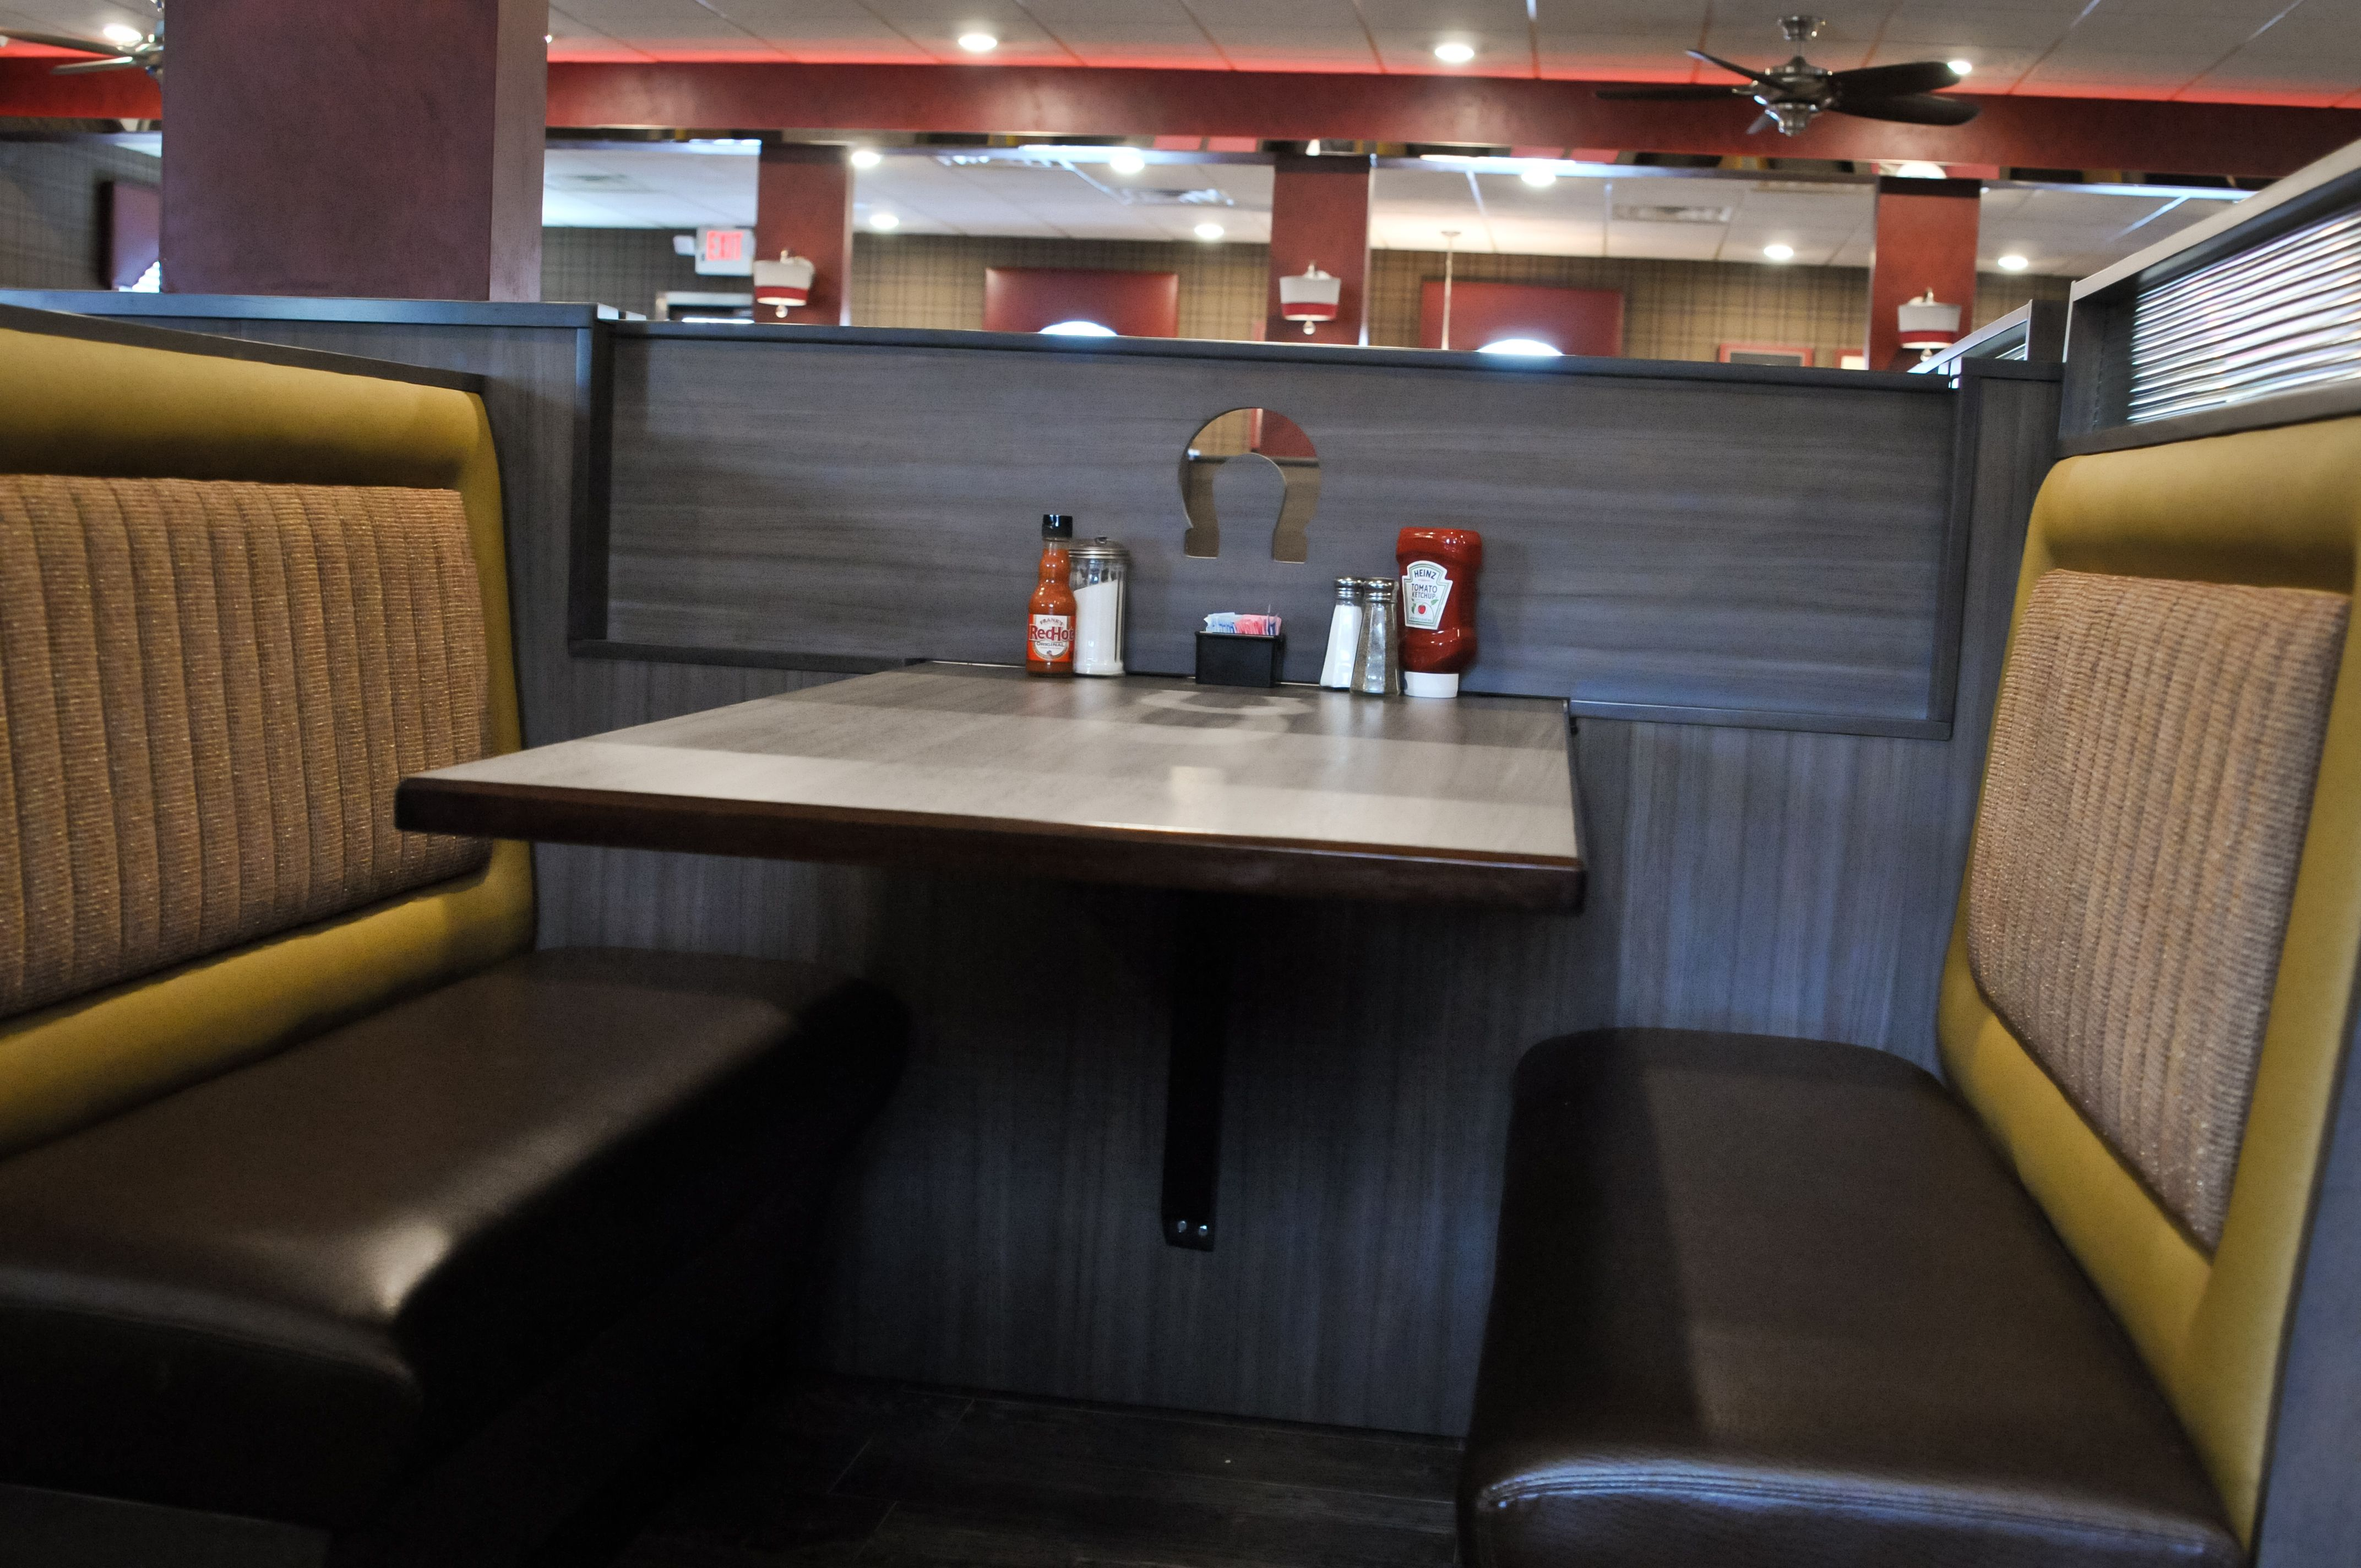 The Booths At The Black Horse Diner Are Able To Be Conjoined When The Half Wall Drops Down To Connect The Tables On Either Side